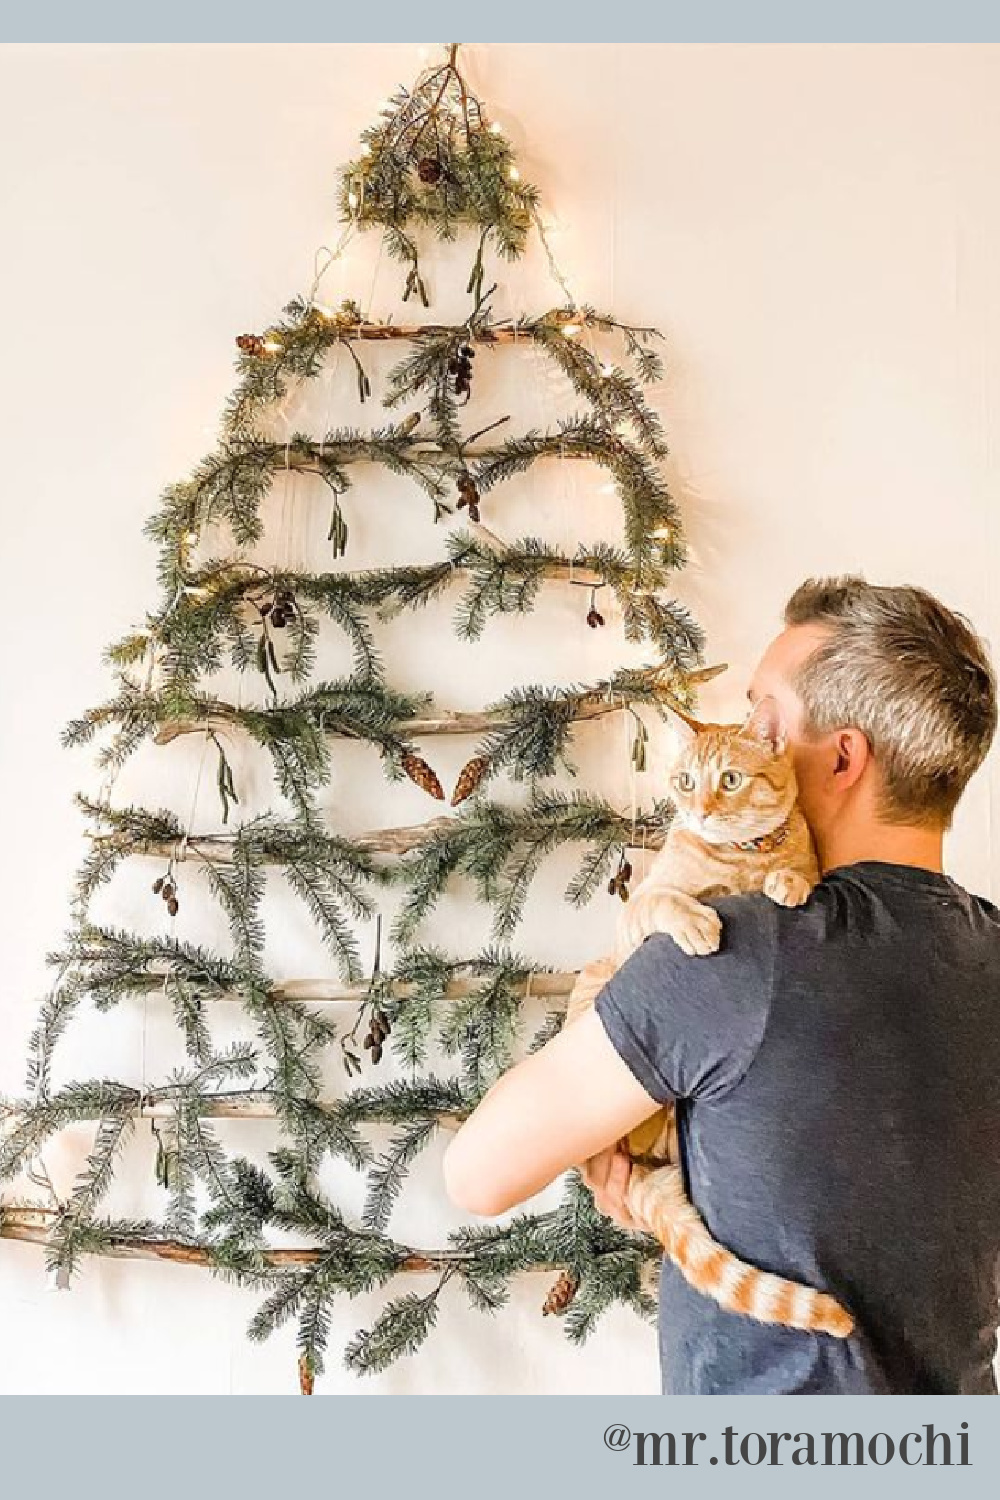 Driftwood Christmas tree decor on a wall with fresh greenery and owner holding Tabby cat - @mr.toramochi. #driftwoodtree #christmastrees #catchristmas